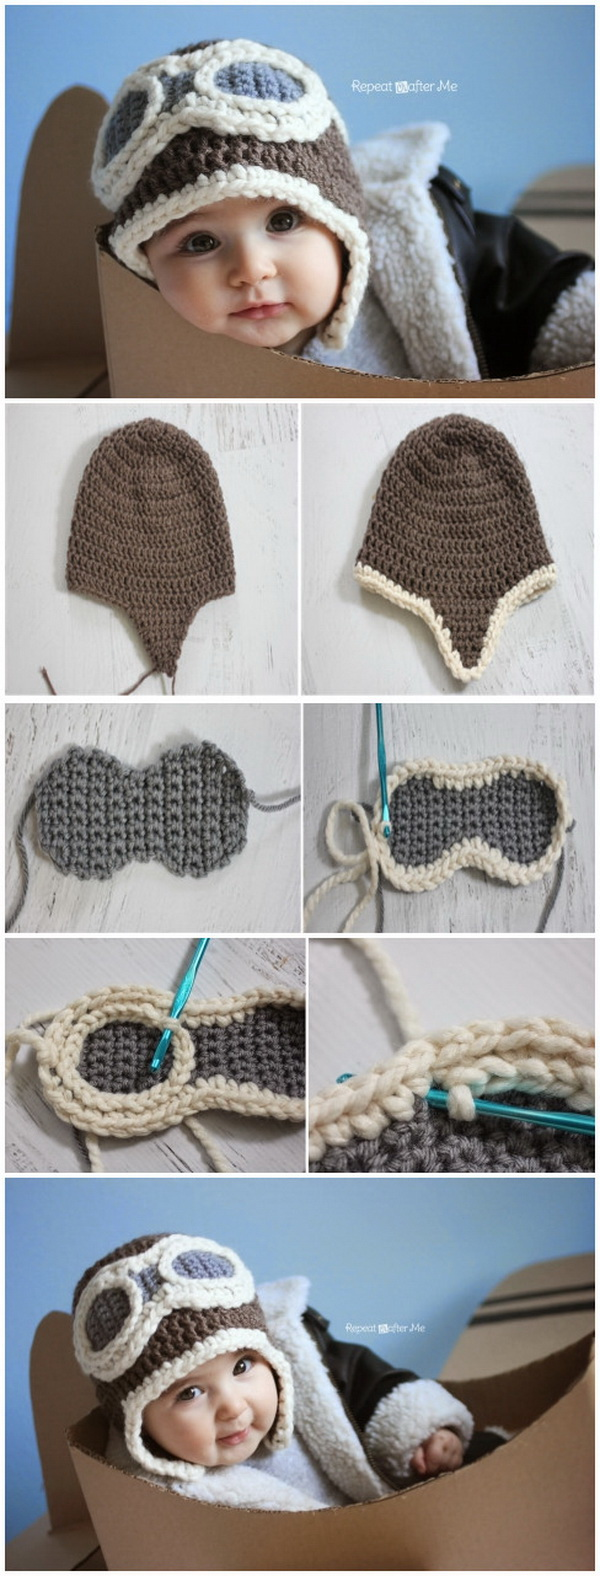 Crochet Aviator Hat with Free Pattern. This aviator hat is so adorable, it is a cute handmade gift for any little one you love.